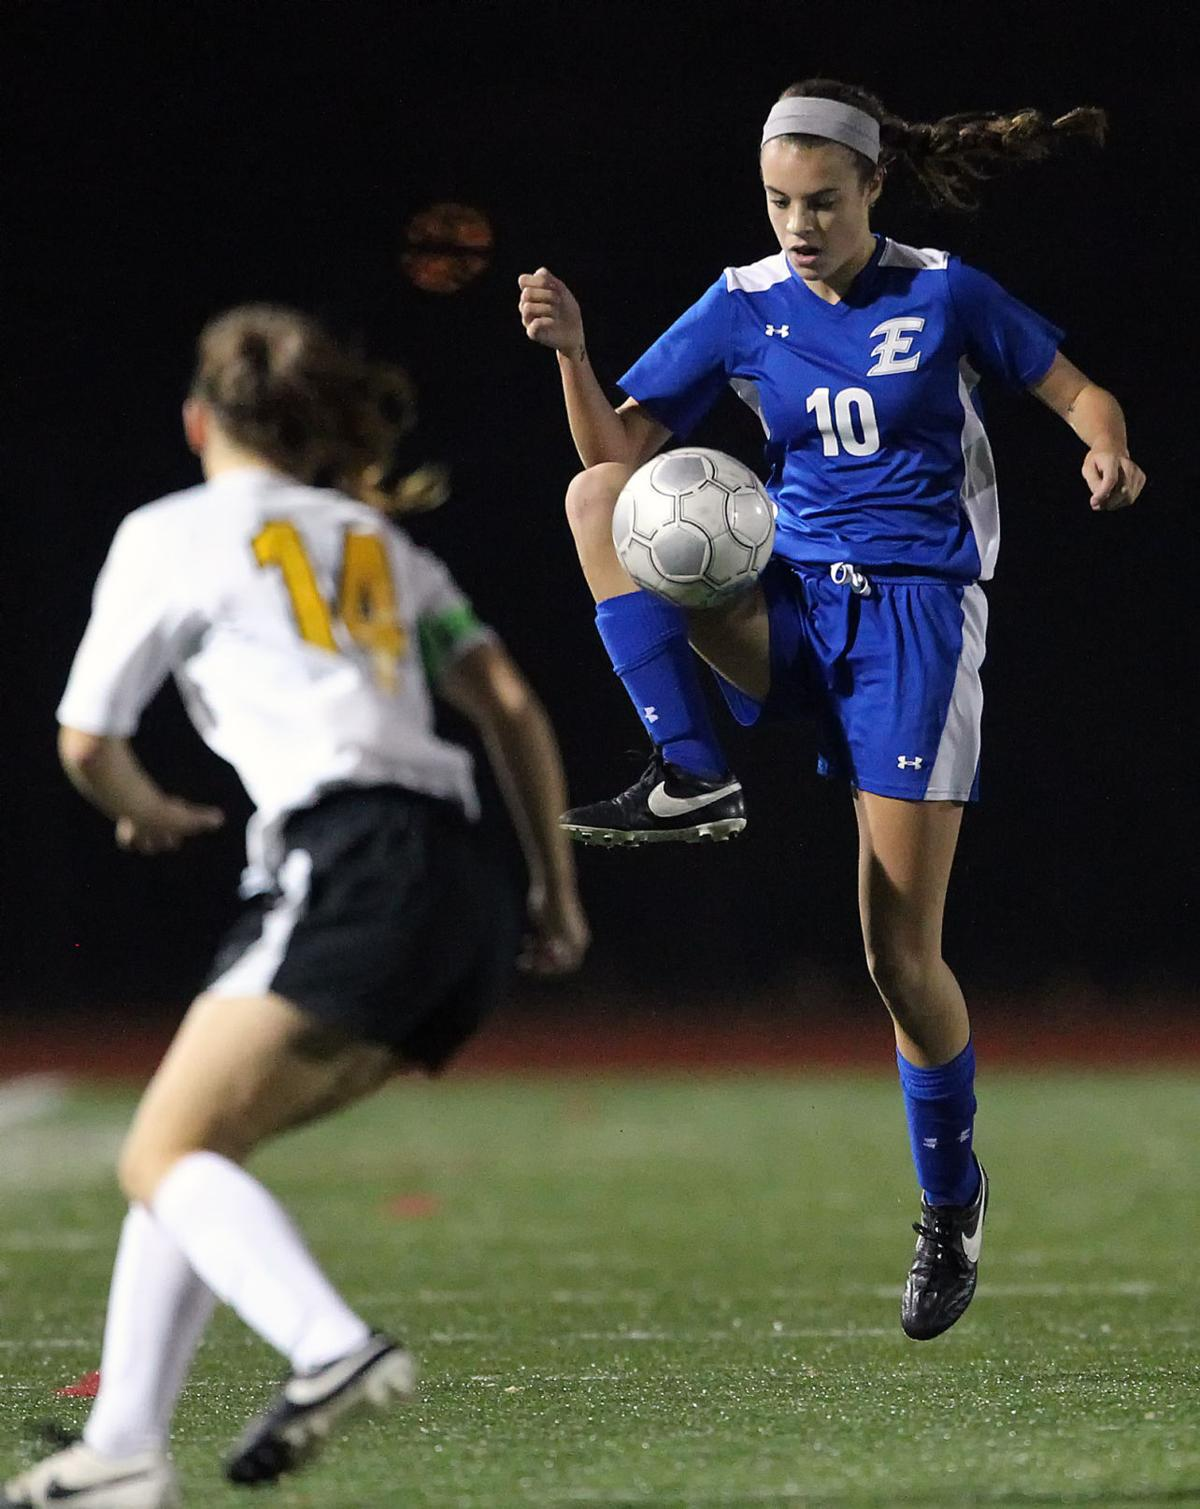 Girls soccer: E-town takes command in L-L Section 2 with 2 ...